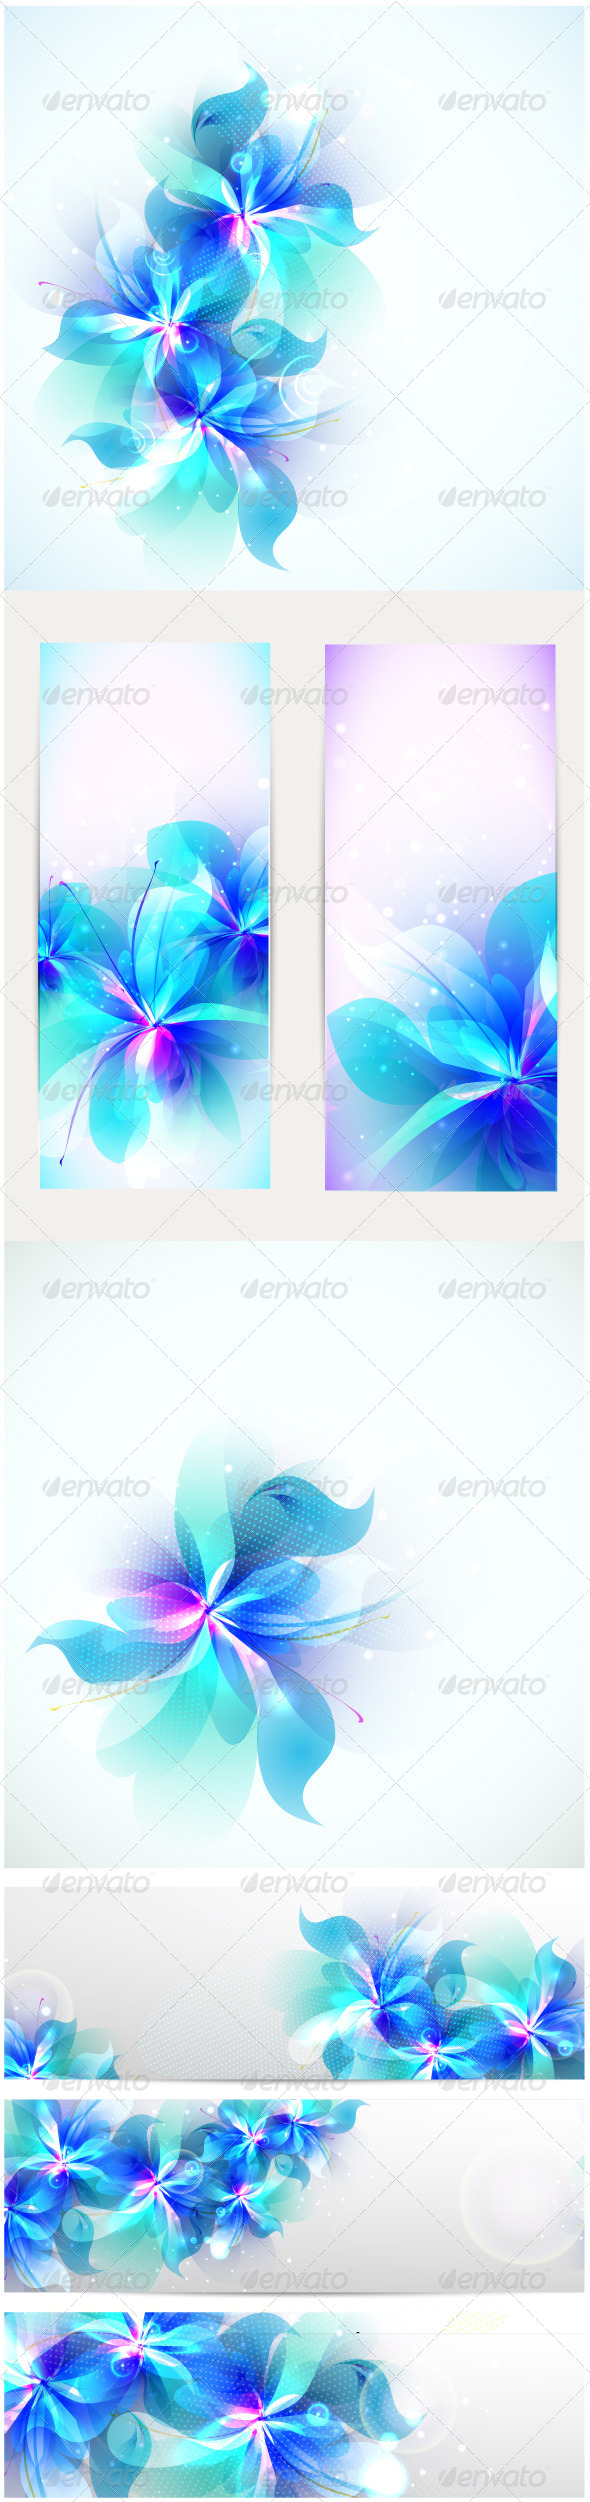 GraphicRiver Abstract Blue Flowers 6320871